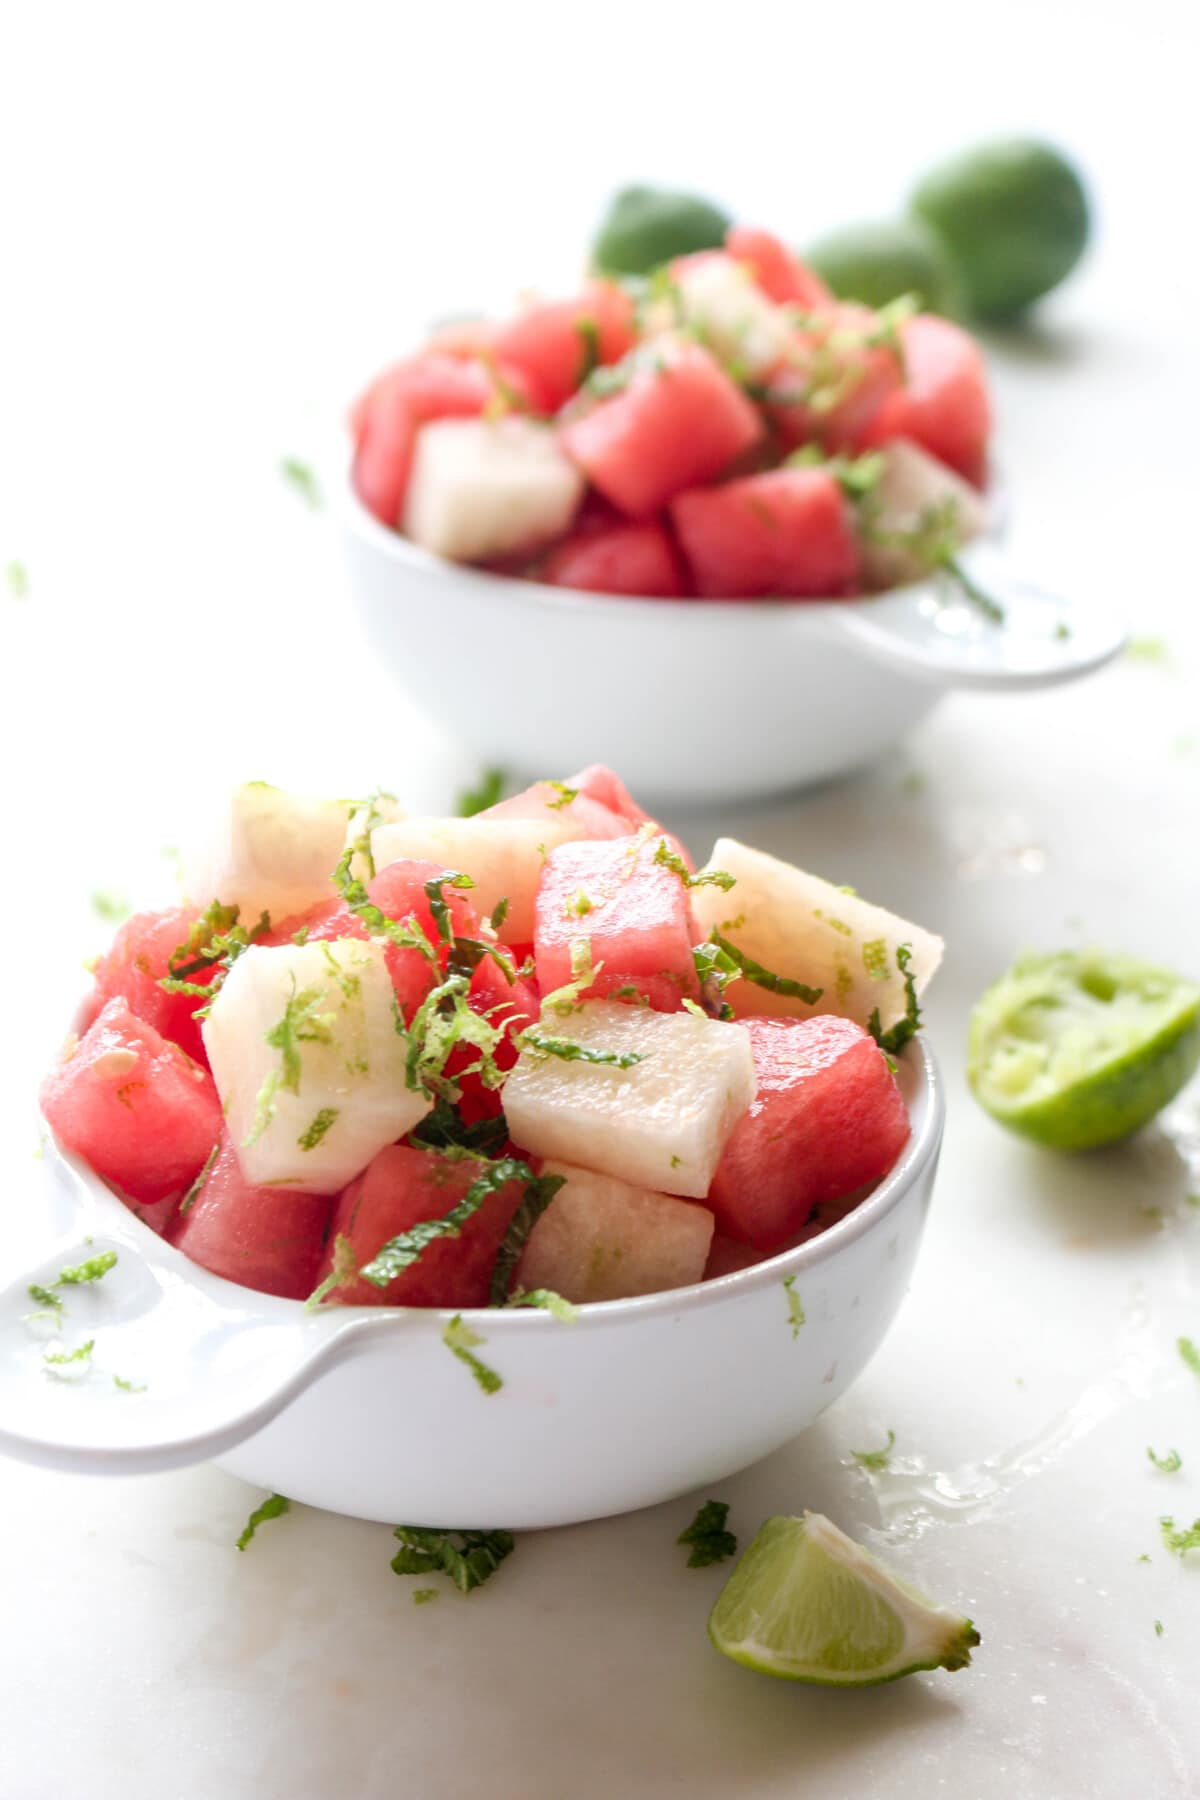 A refreshing watermelon salad recipe with jicama, mint, and lime! Perfect for a barbeque or potluck!